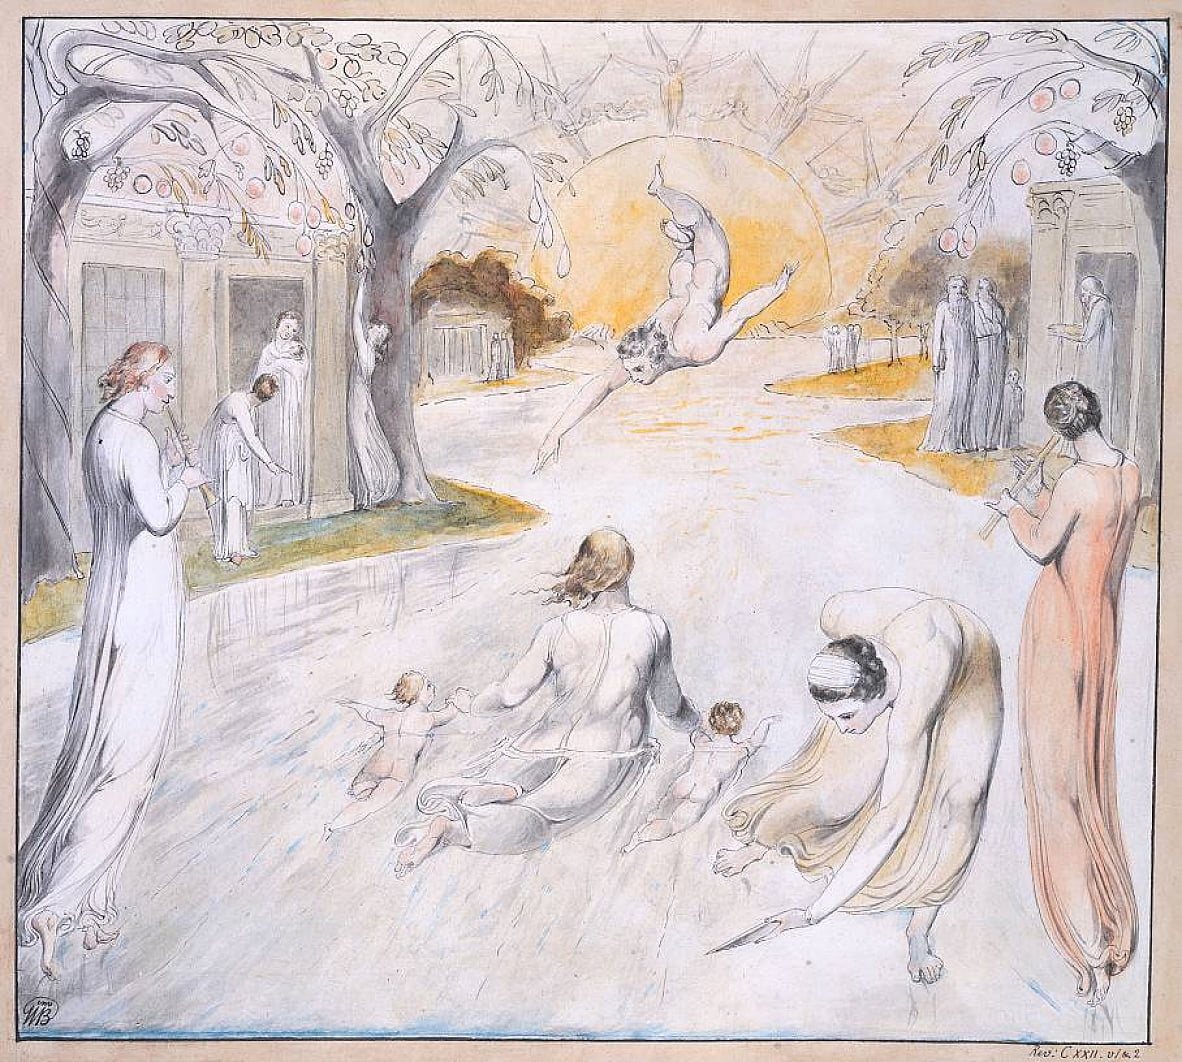 El río de la vida de William Blake